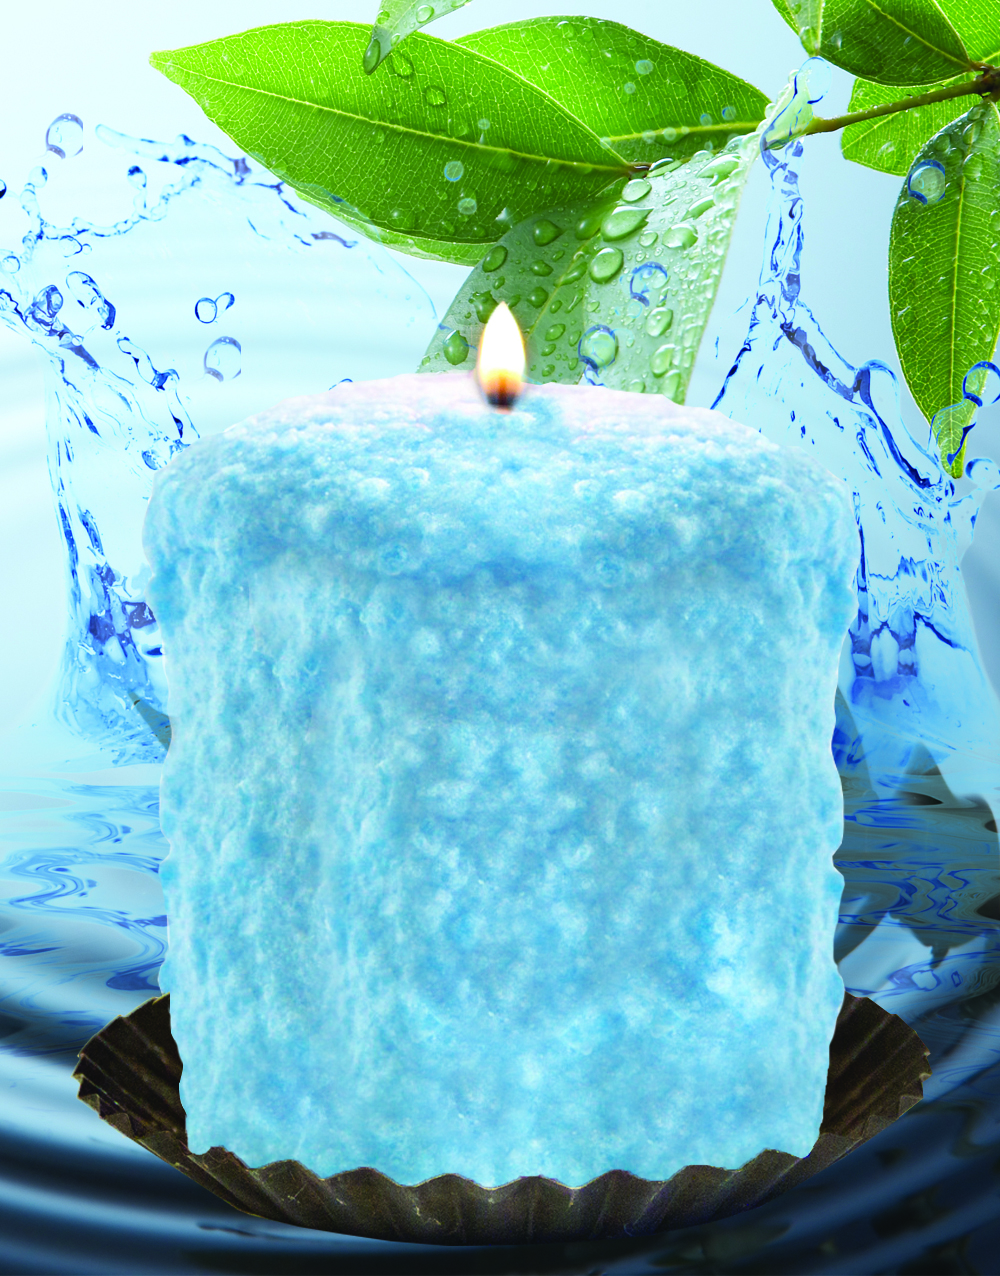 Tranquility Hearth Candle